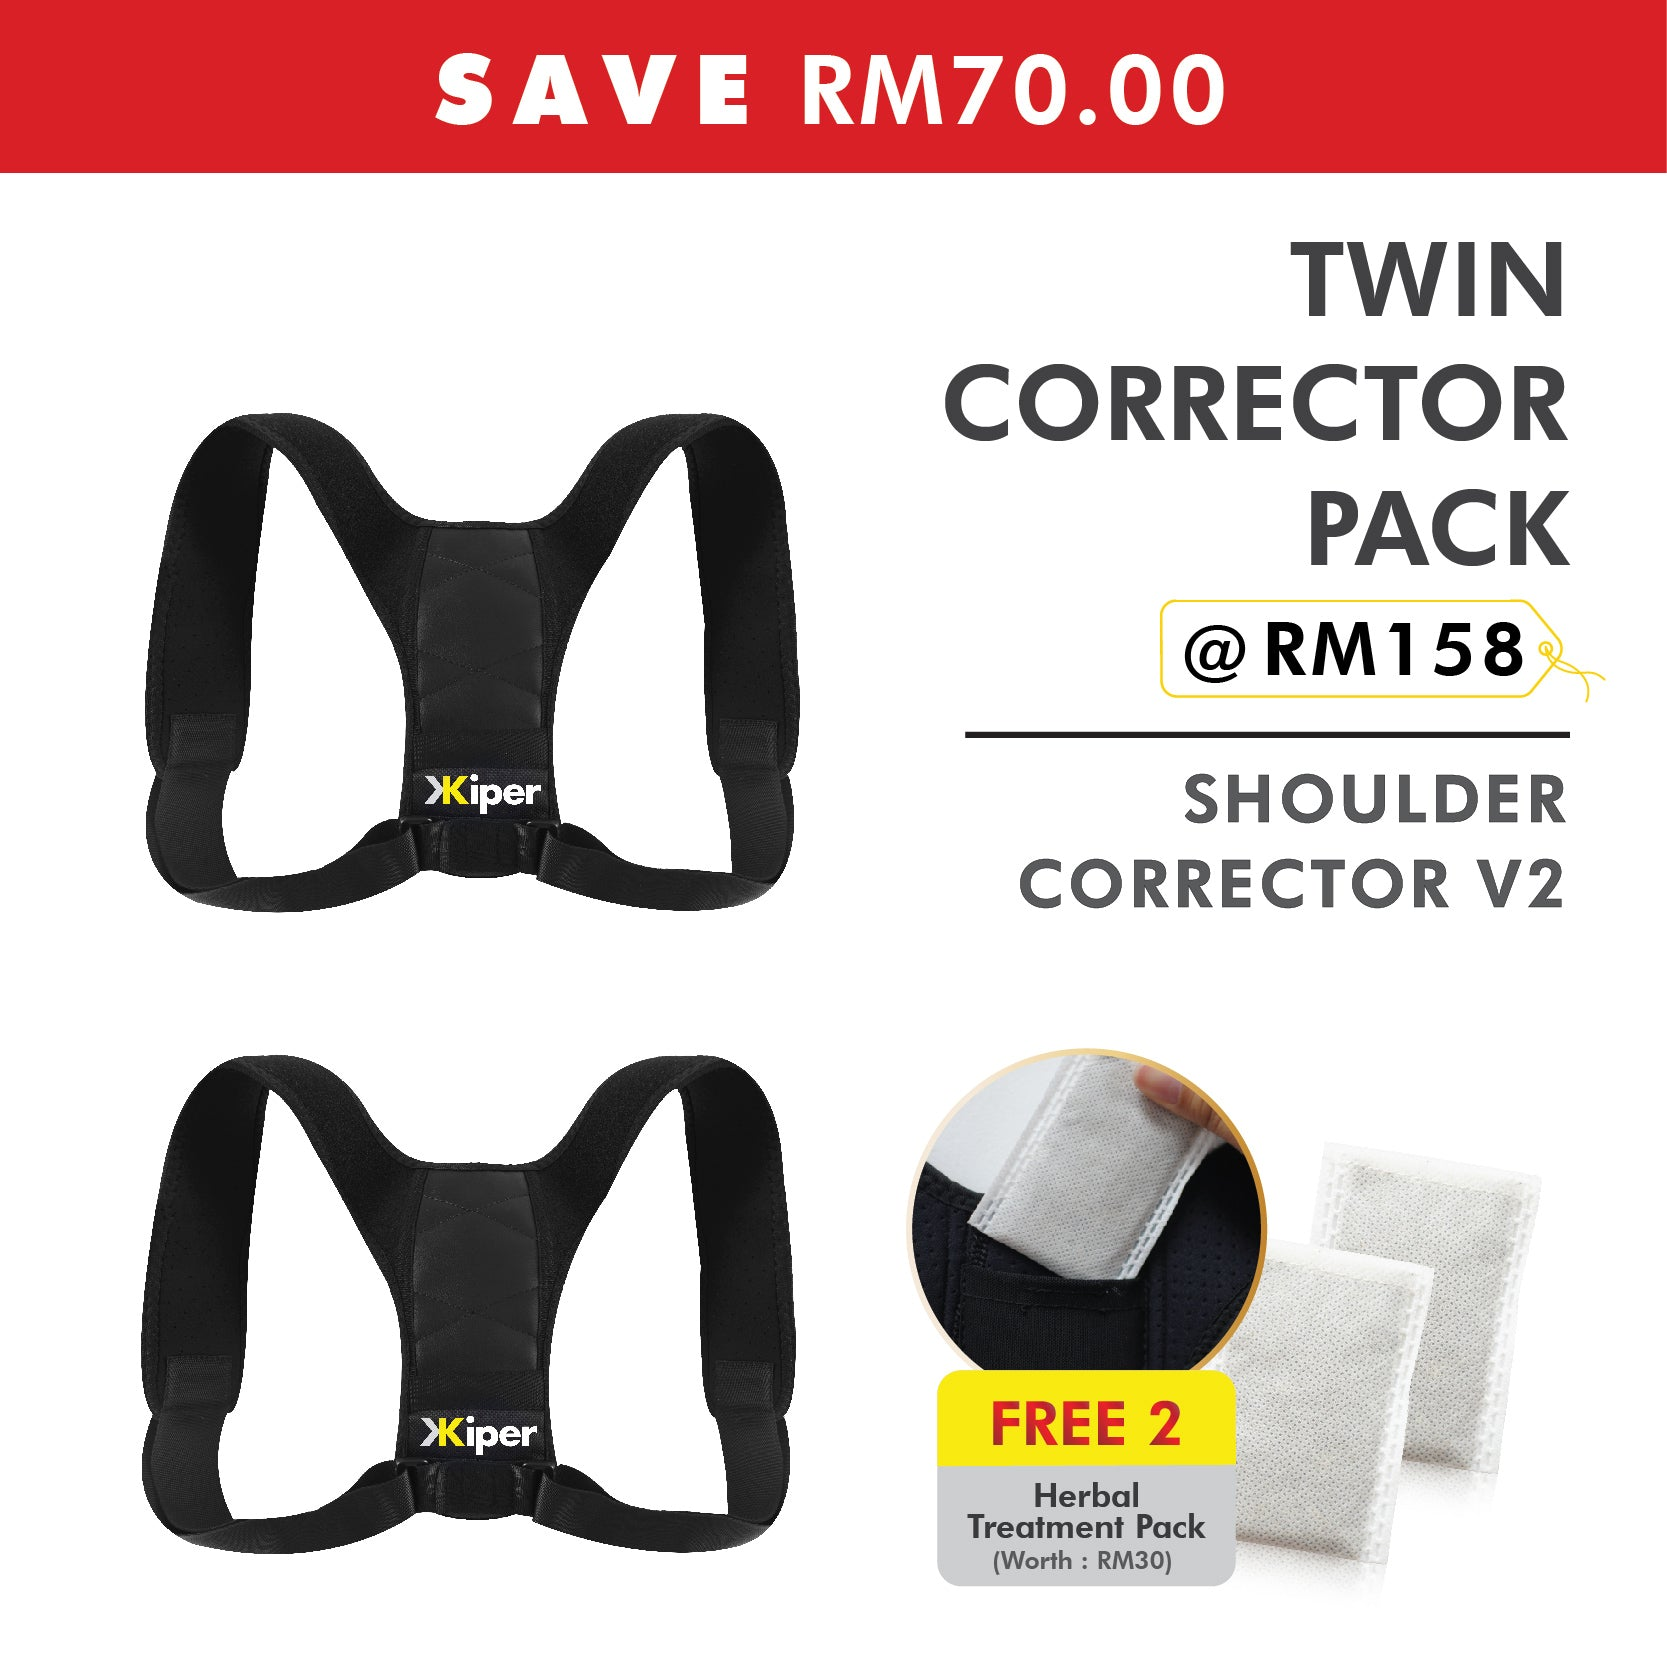 Twin Corrector Pack Kiper Essentials Shoulder Corrector V2